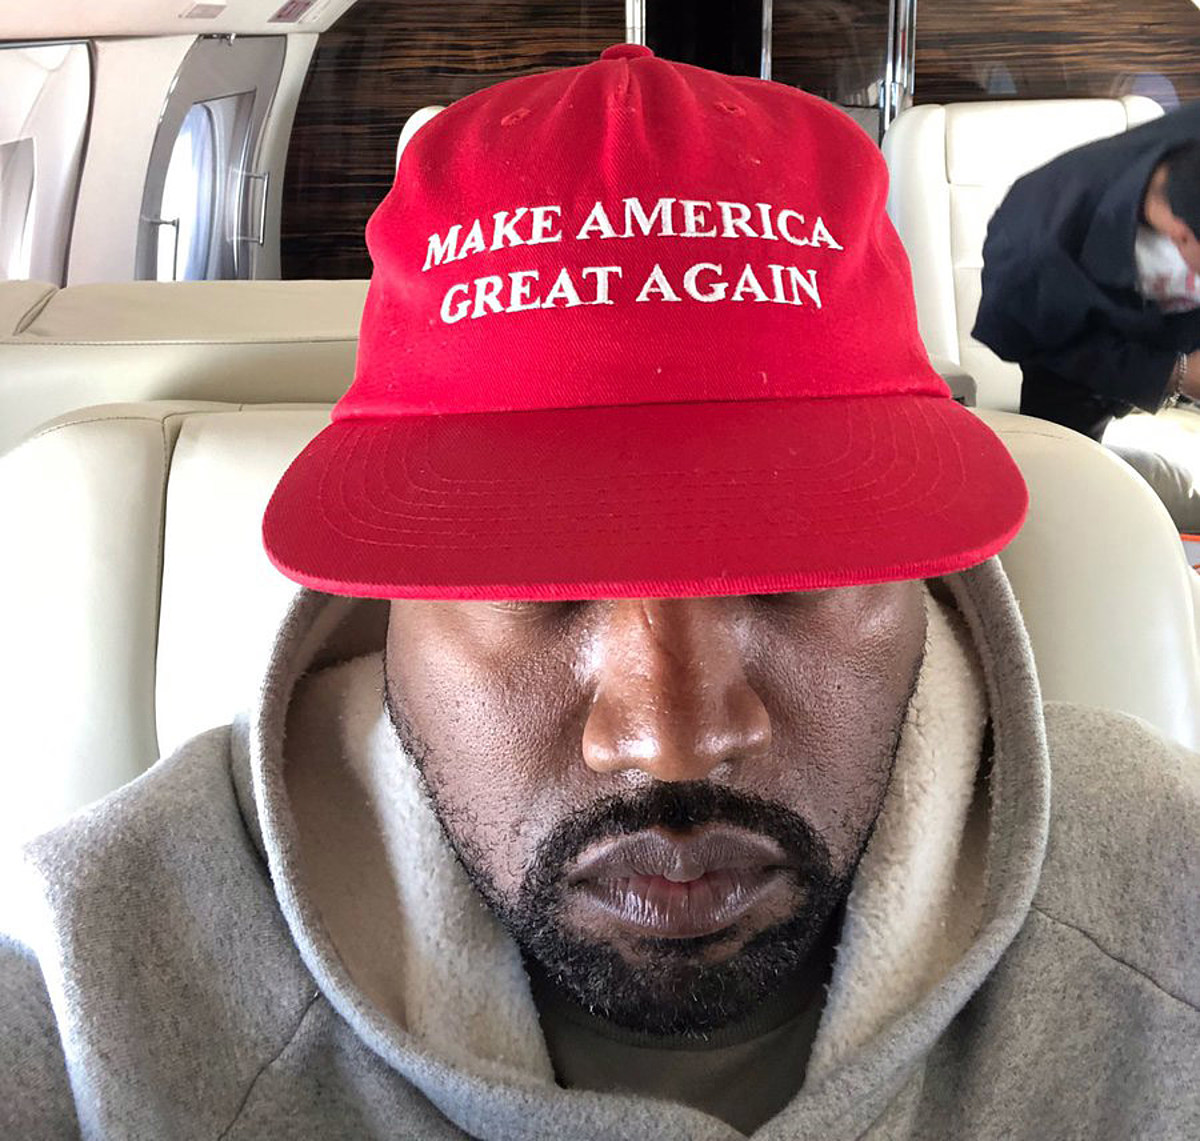 Kanye's being helped by Republicans in presidential run; Trump denies involvement